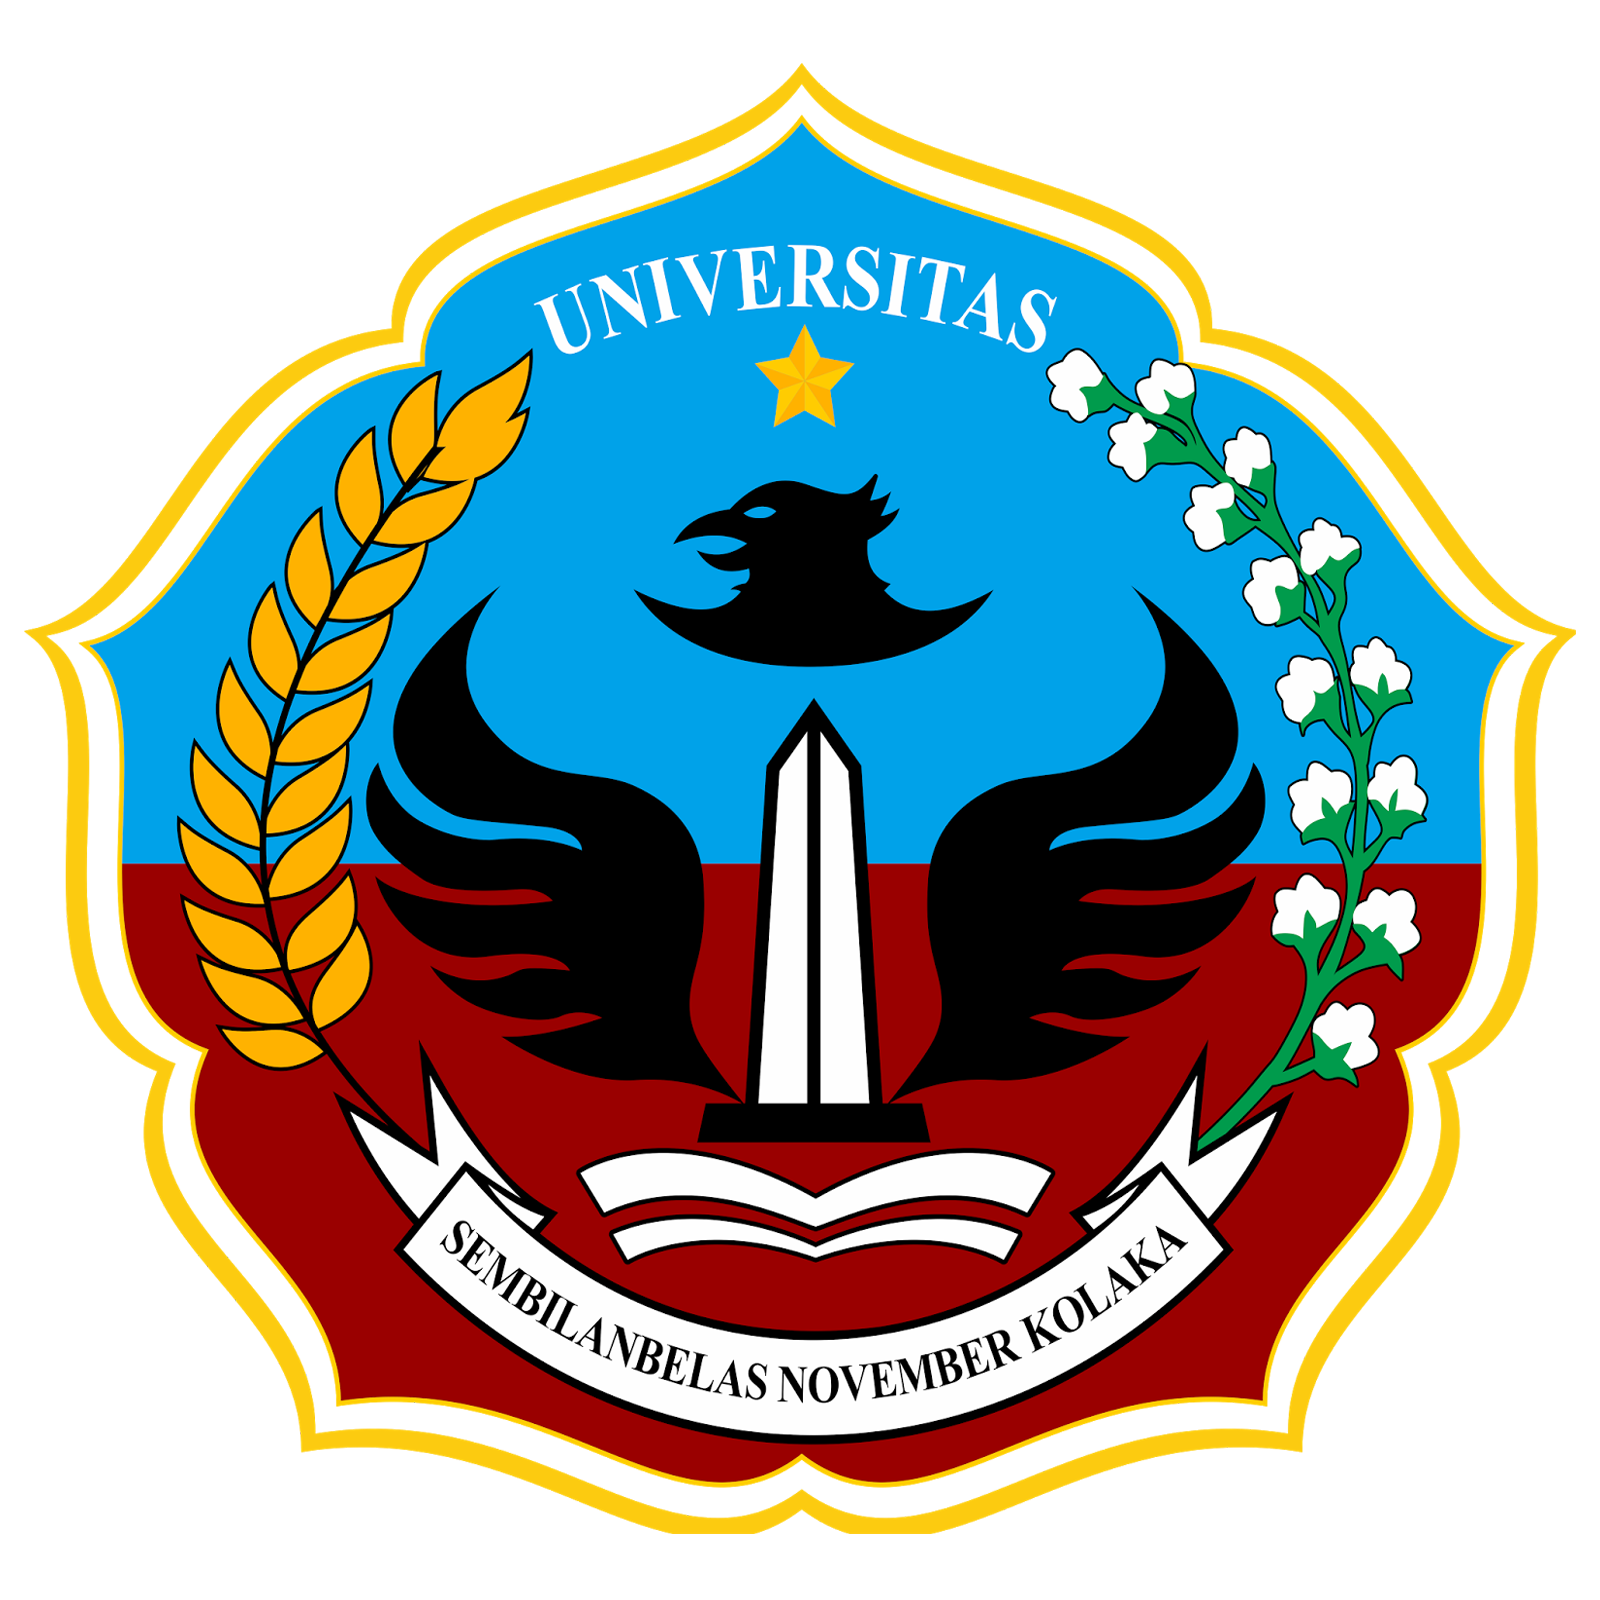 Logo USN (Universitas 19 November) Kolaka